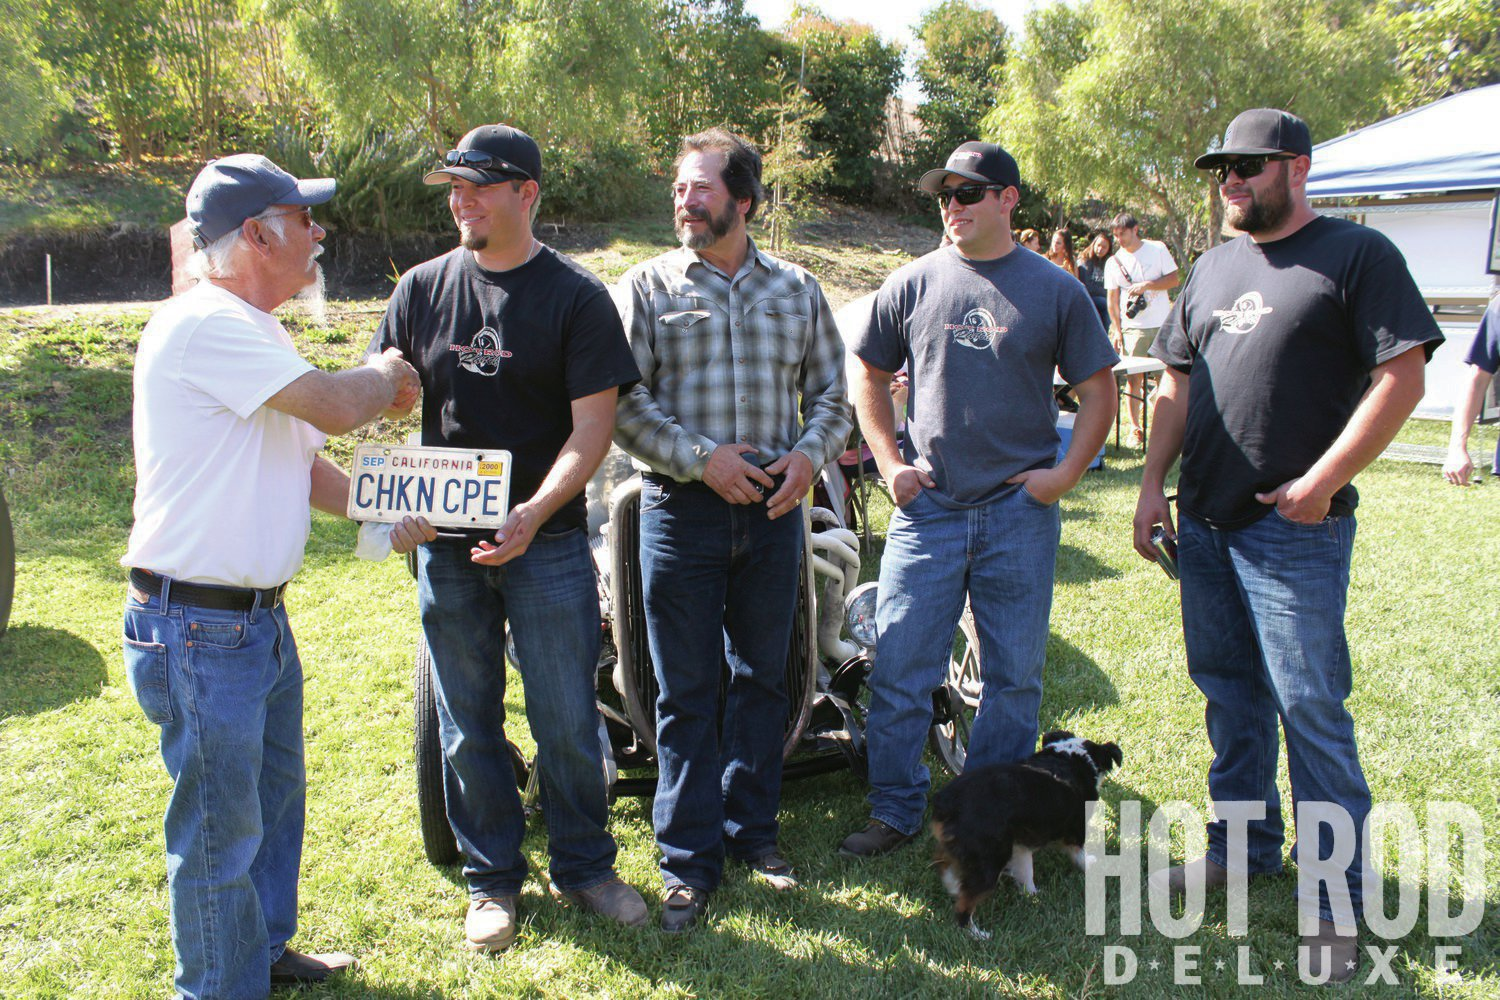 """Ed Potthoff (left) came out to the Hot Rod Ranch's Gasser Reunion and presented the license plate he ran on the car to Gil, passing the torch and closing his chapter of the car's ownership. """"I wish I had it back,"""" Ed said more than once during the show. Next to Gil are (from left) his father, Gil Sr., and brothers Randy and Jamie."""